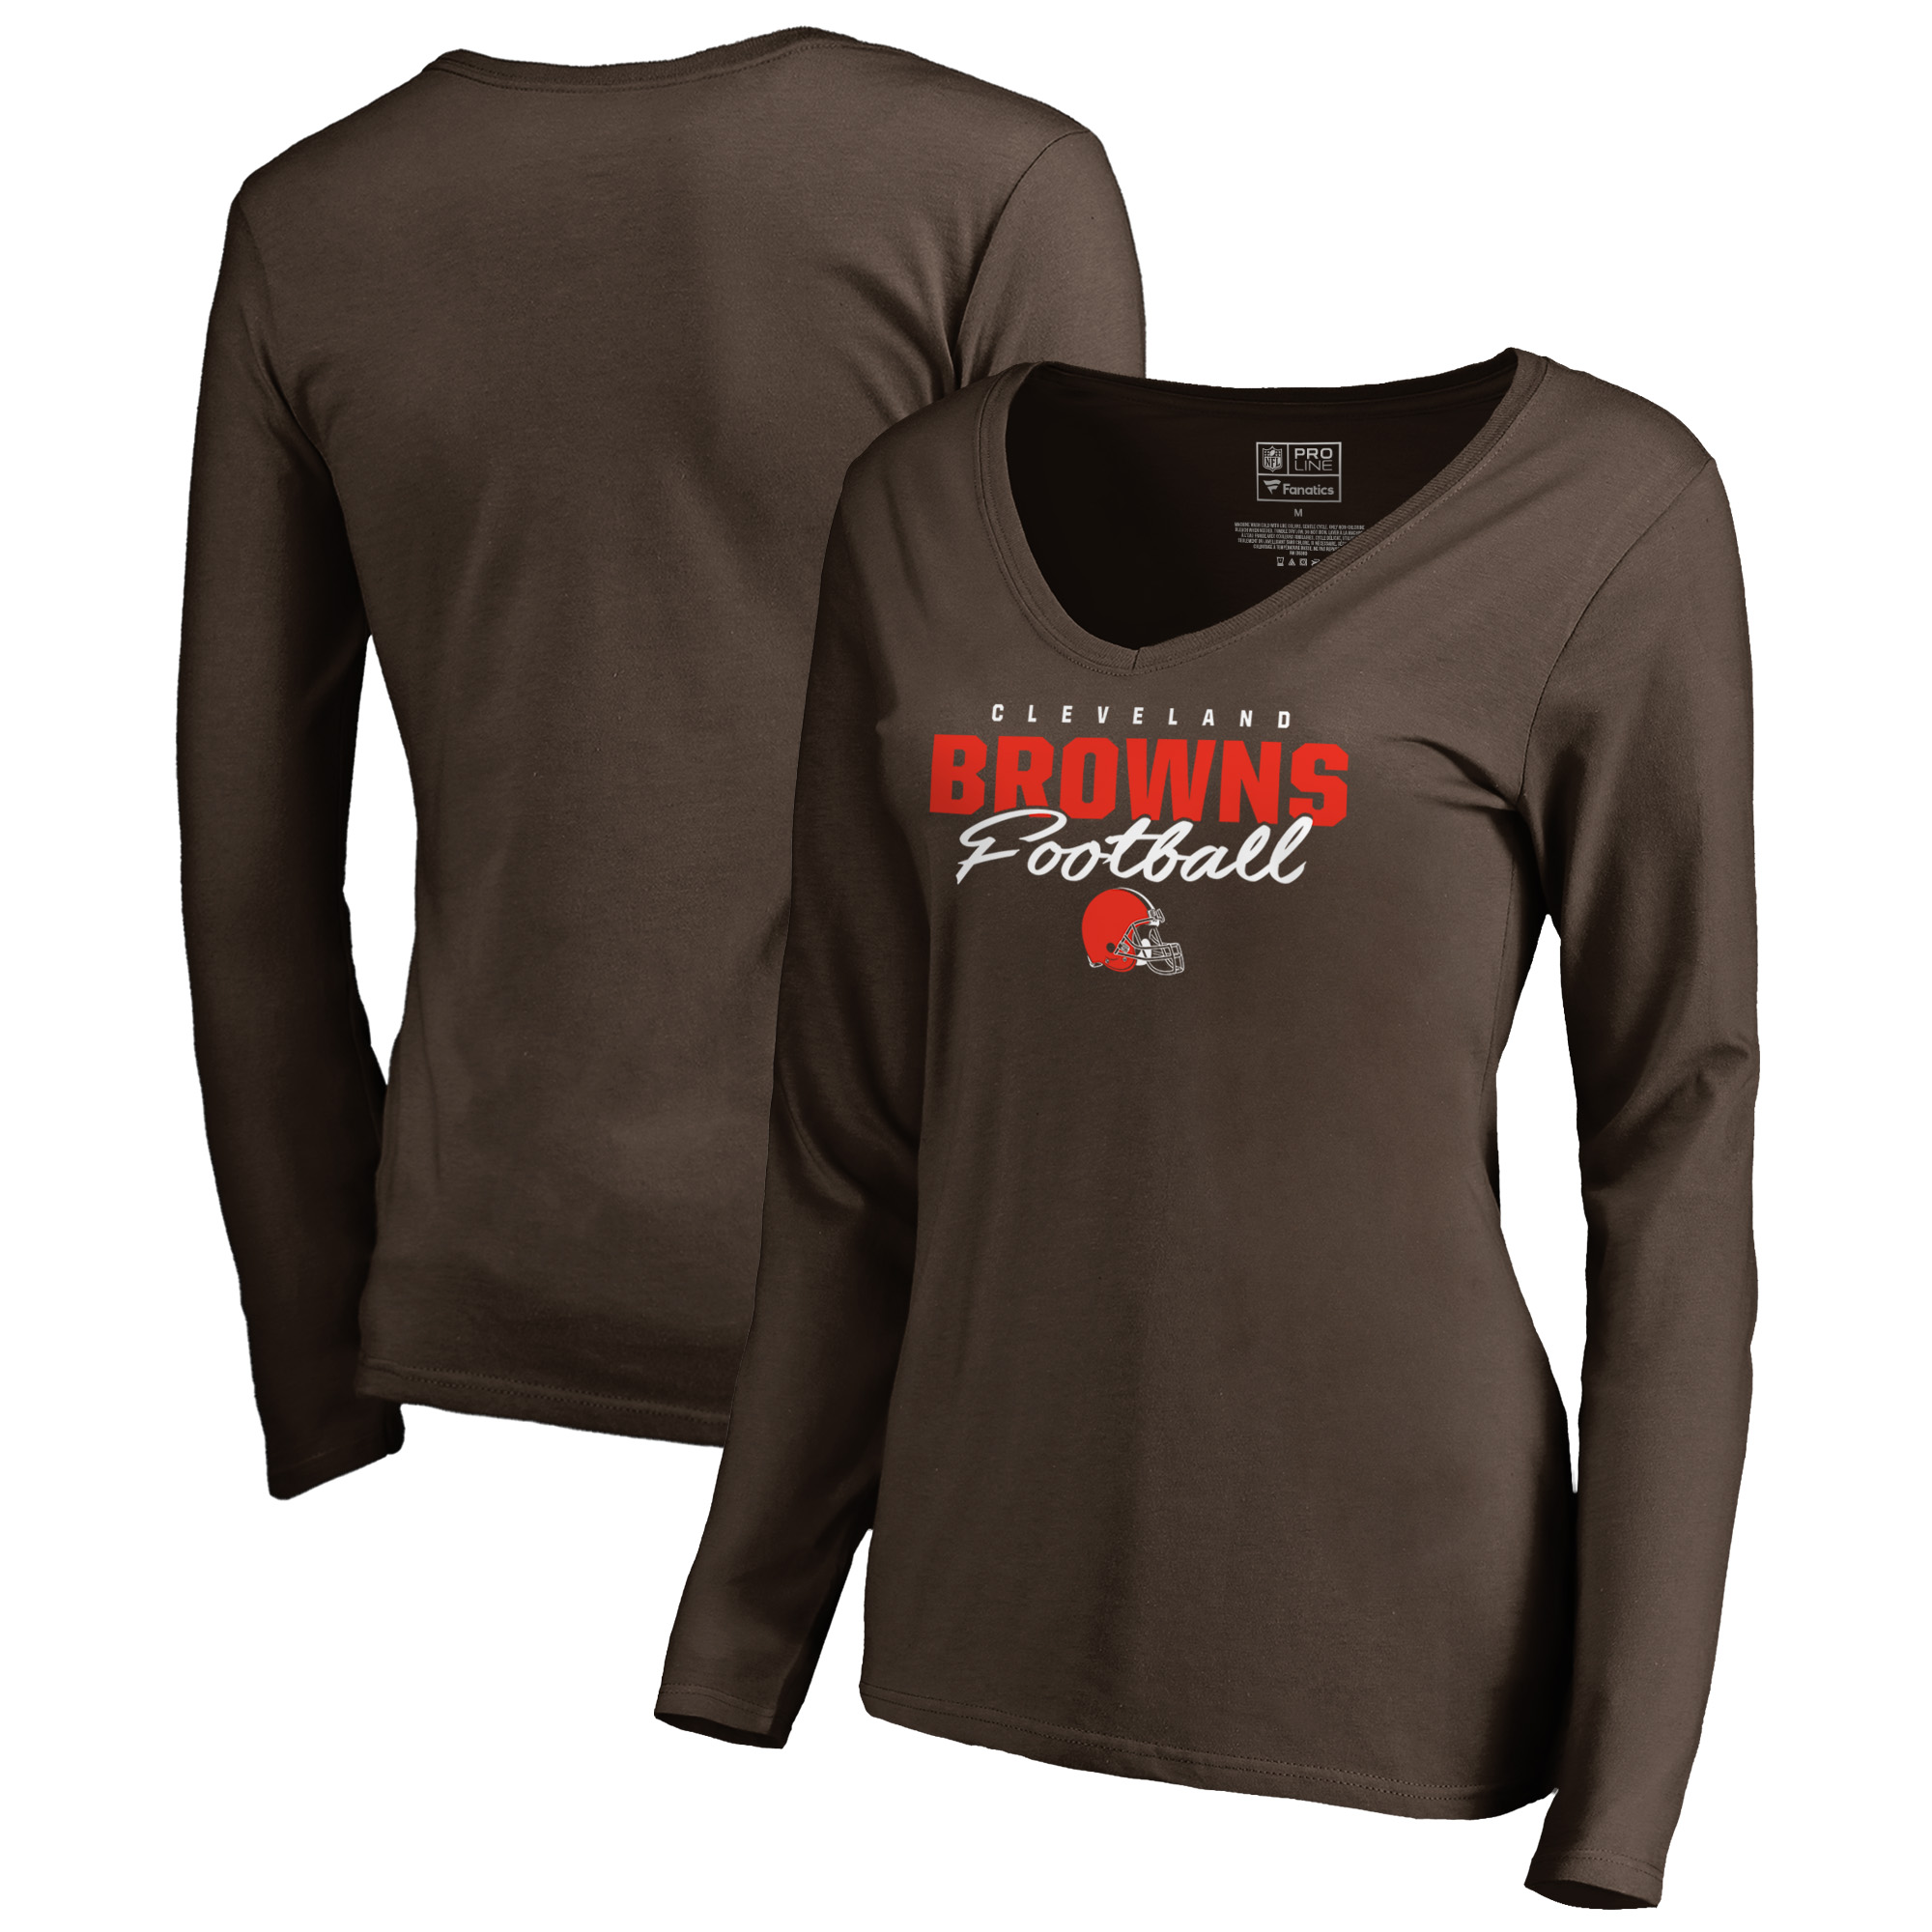 Cleveland Browns NFL Pro Line by Fanatics Branded Women's Iconic Collection Script Assist Long Sleeve V-Neck T-Shirt - Brown